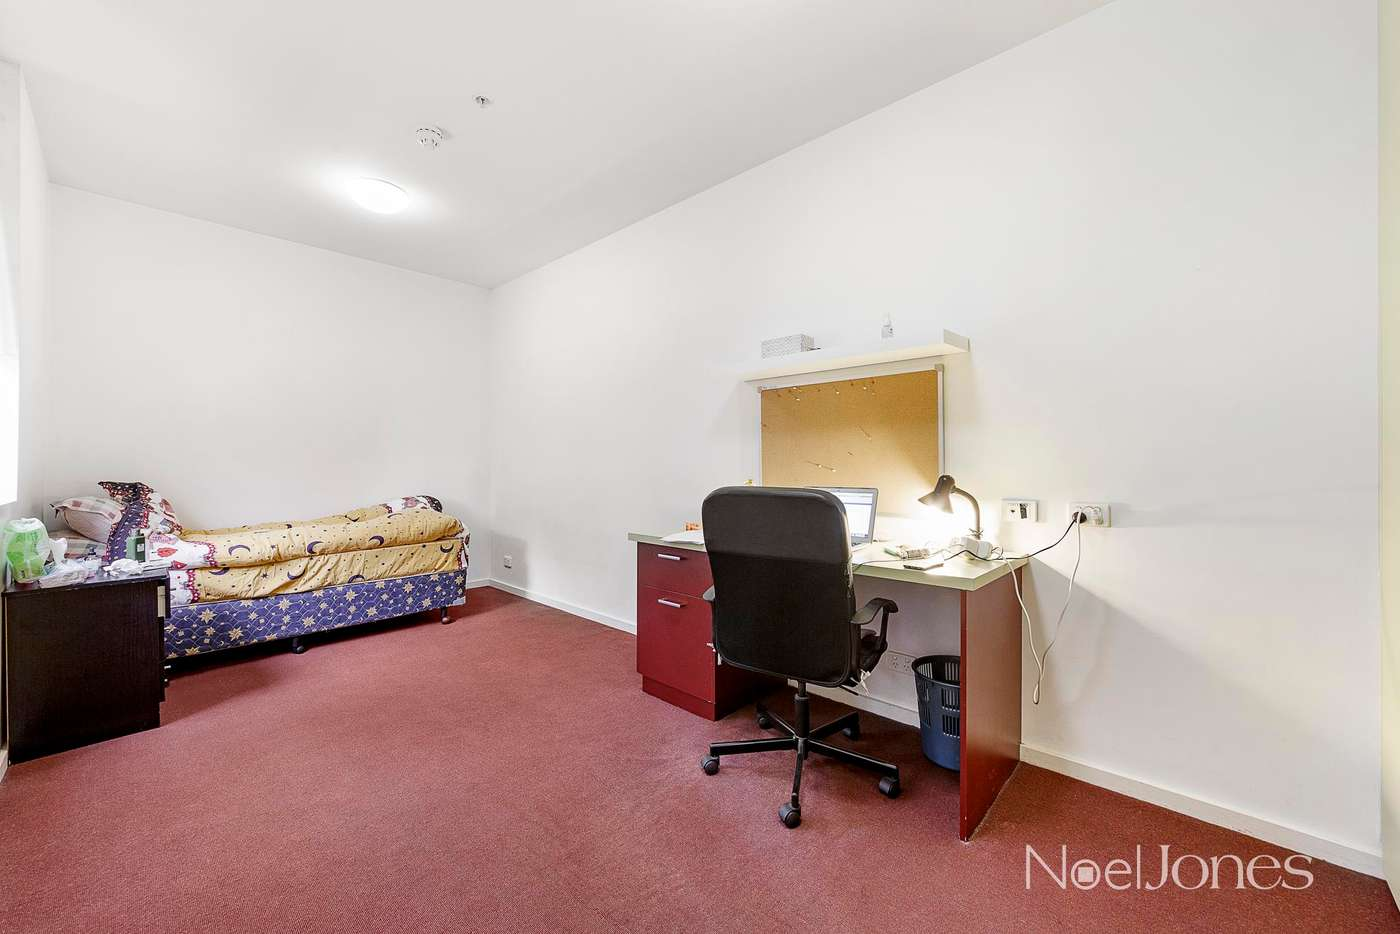 Fifth view of Homely apartment listing, 101/60 Waverley Road, Malvern East VIC 3145